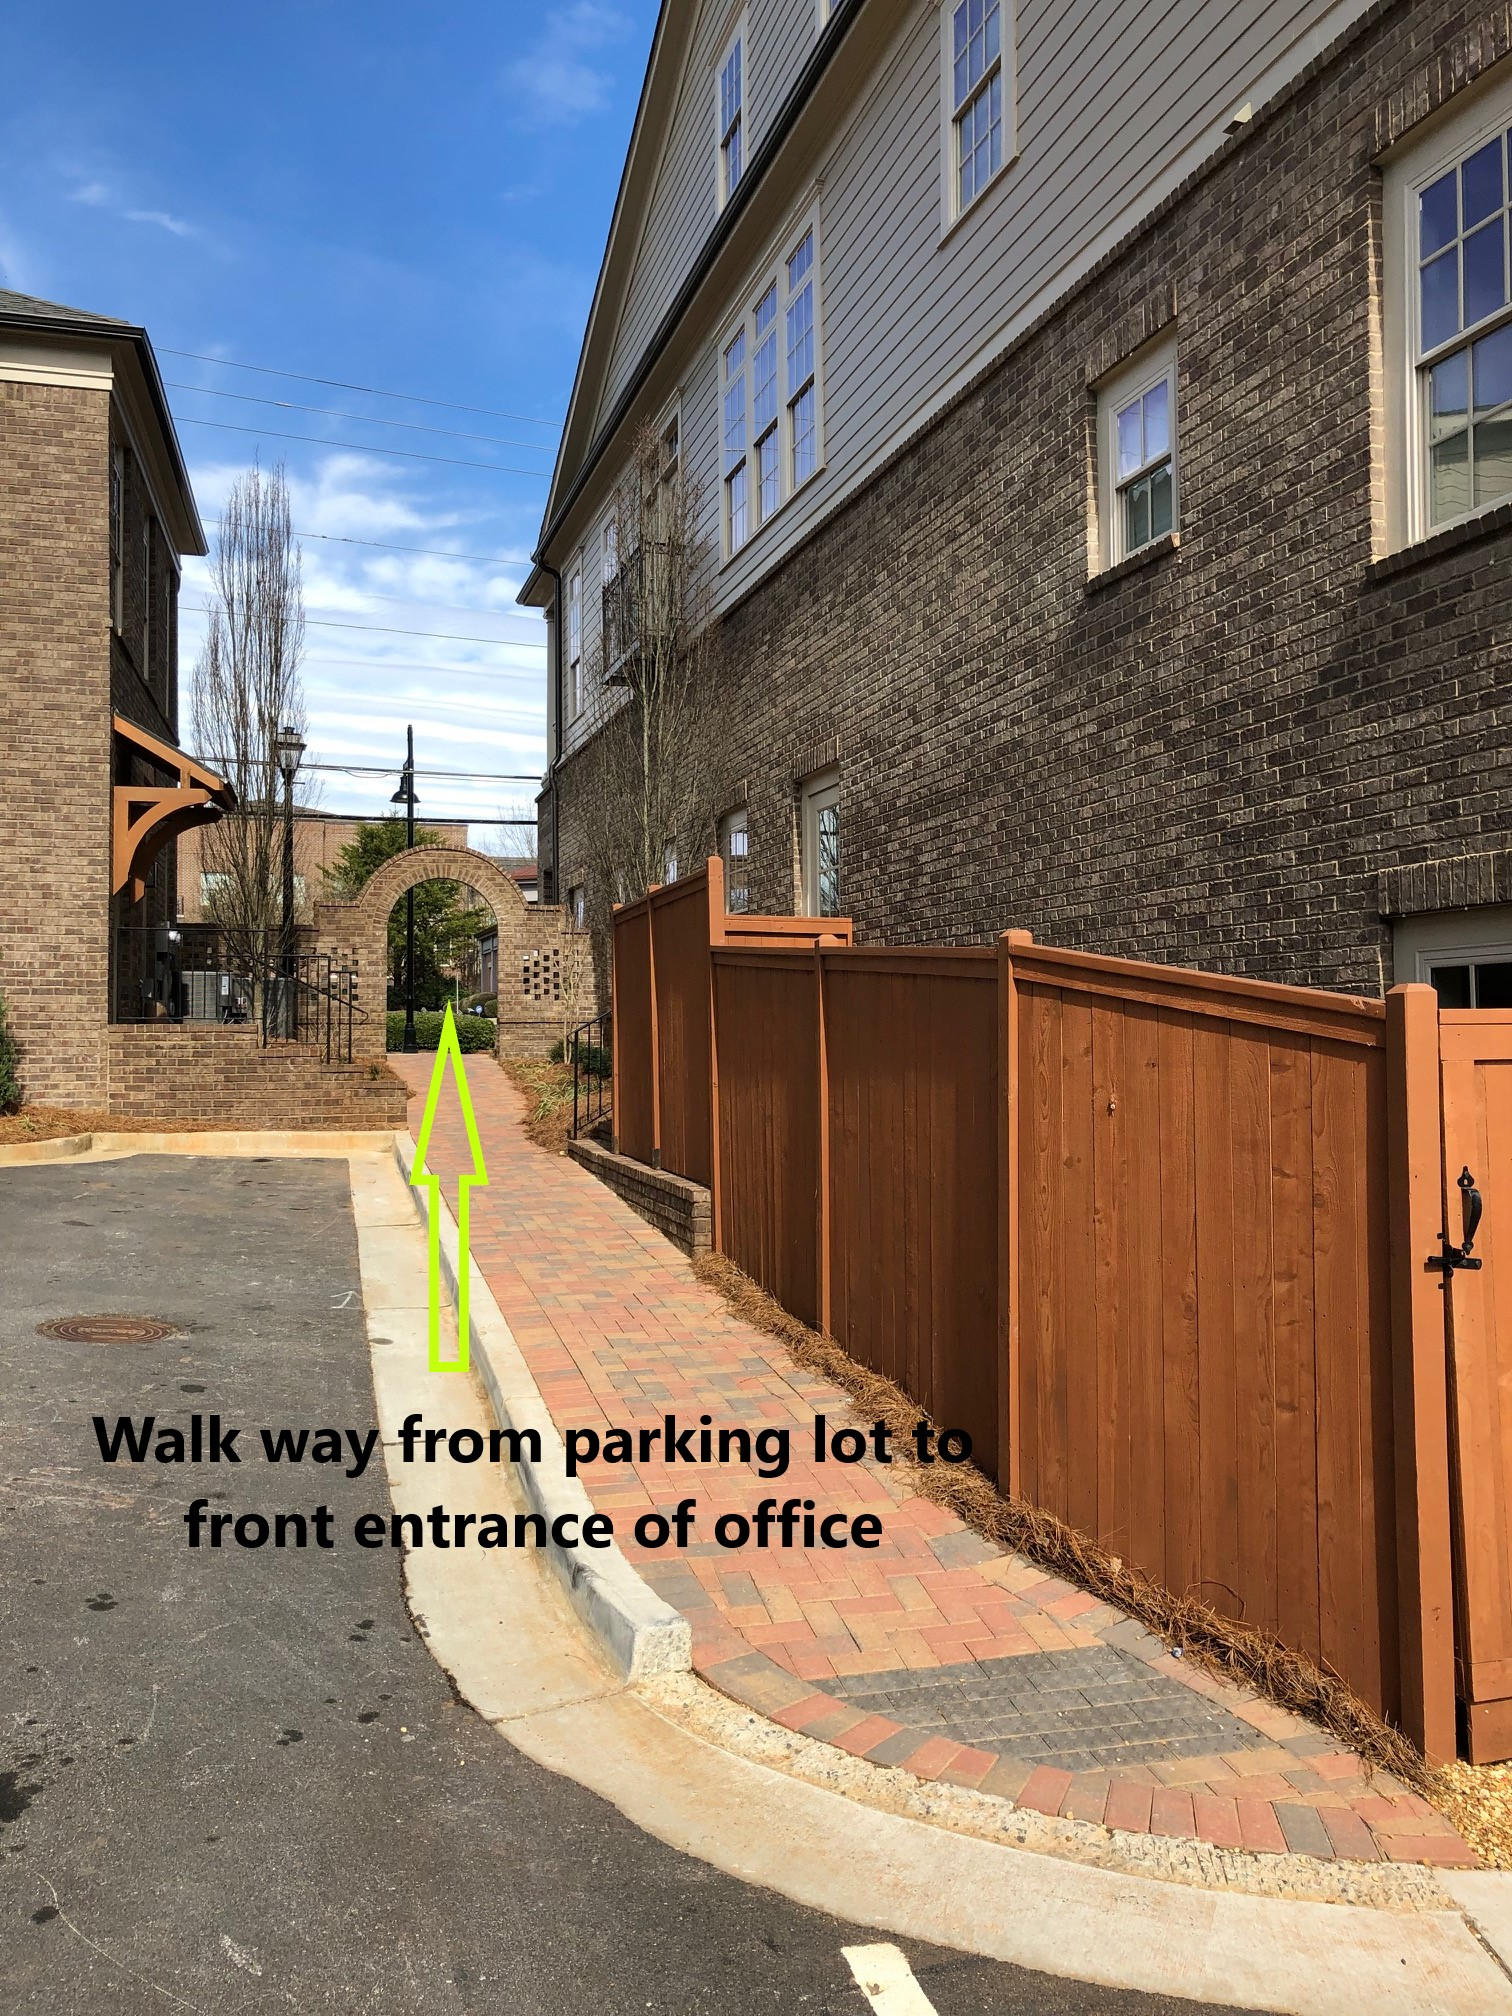 Once in the parking lot, you can take a short cut to the front of the office with this walkway.